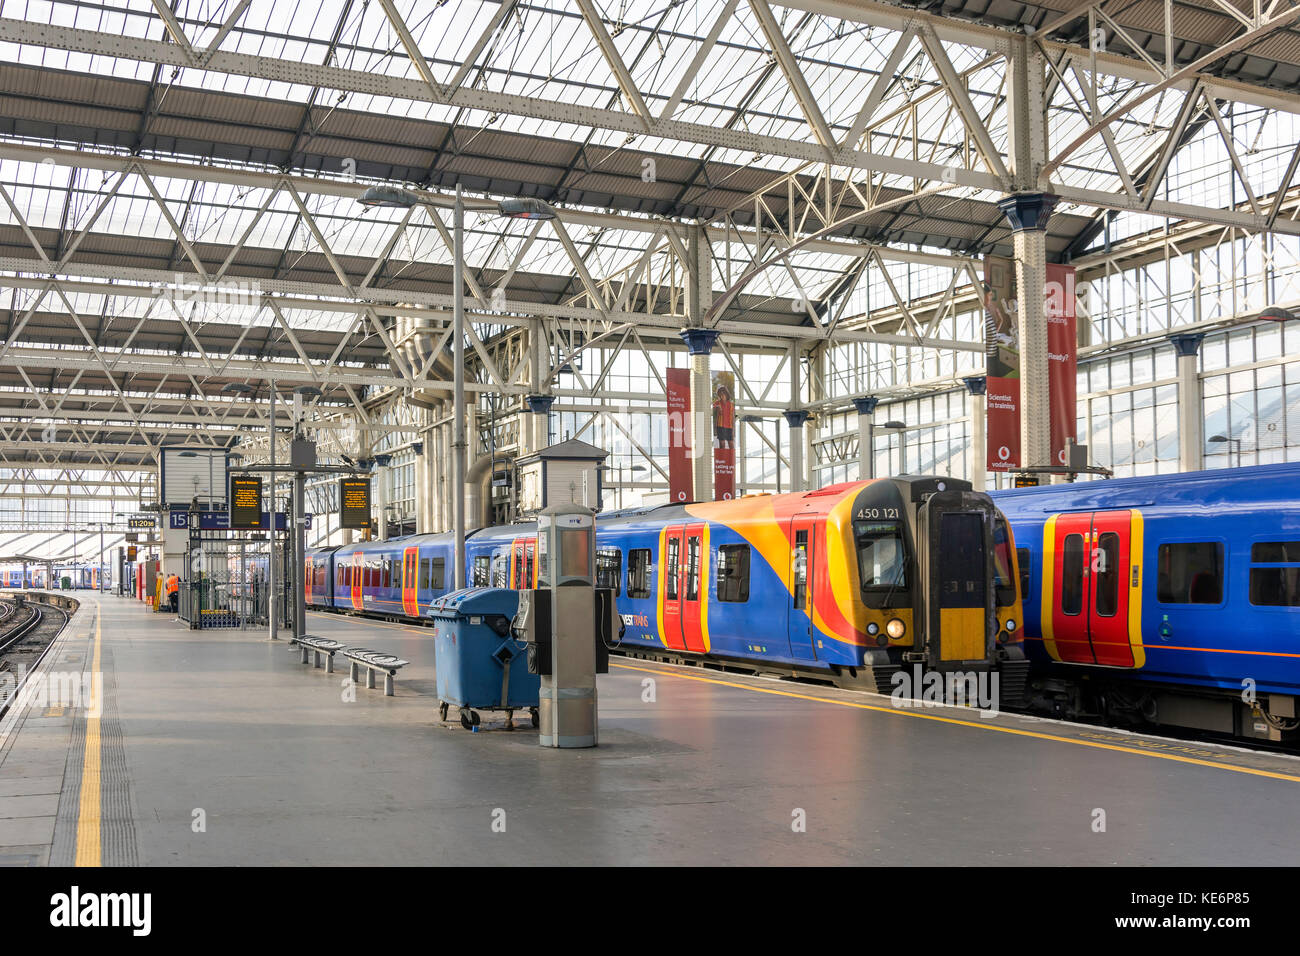 Train platforms in London Waterloo Station, Waterloo, London Borough of Lambeth, Greater London, England, United - Stock Image